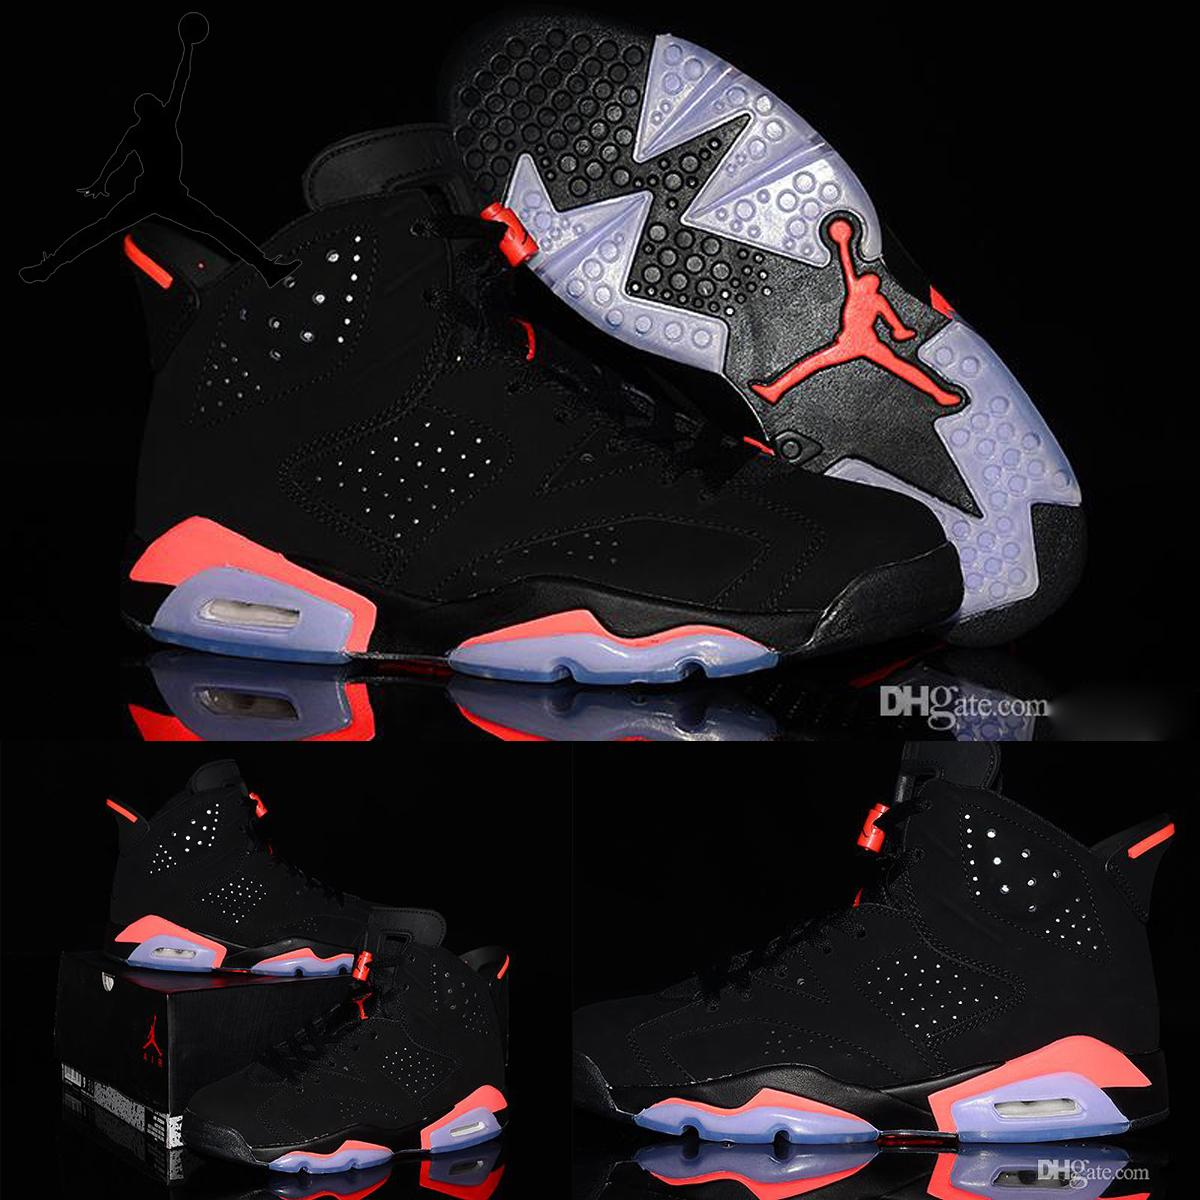 Nike Air Jordan 6 Retro Vi Black Infrared 23 Gs Mens Womens Basketball Shoes,Original  Nike Aj6 J6 Jordan6 Black Red For Men Women Sneakers Basketball Shoes ...